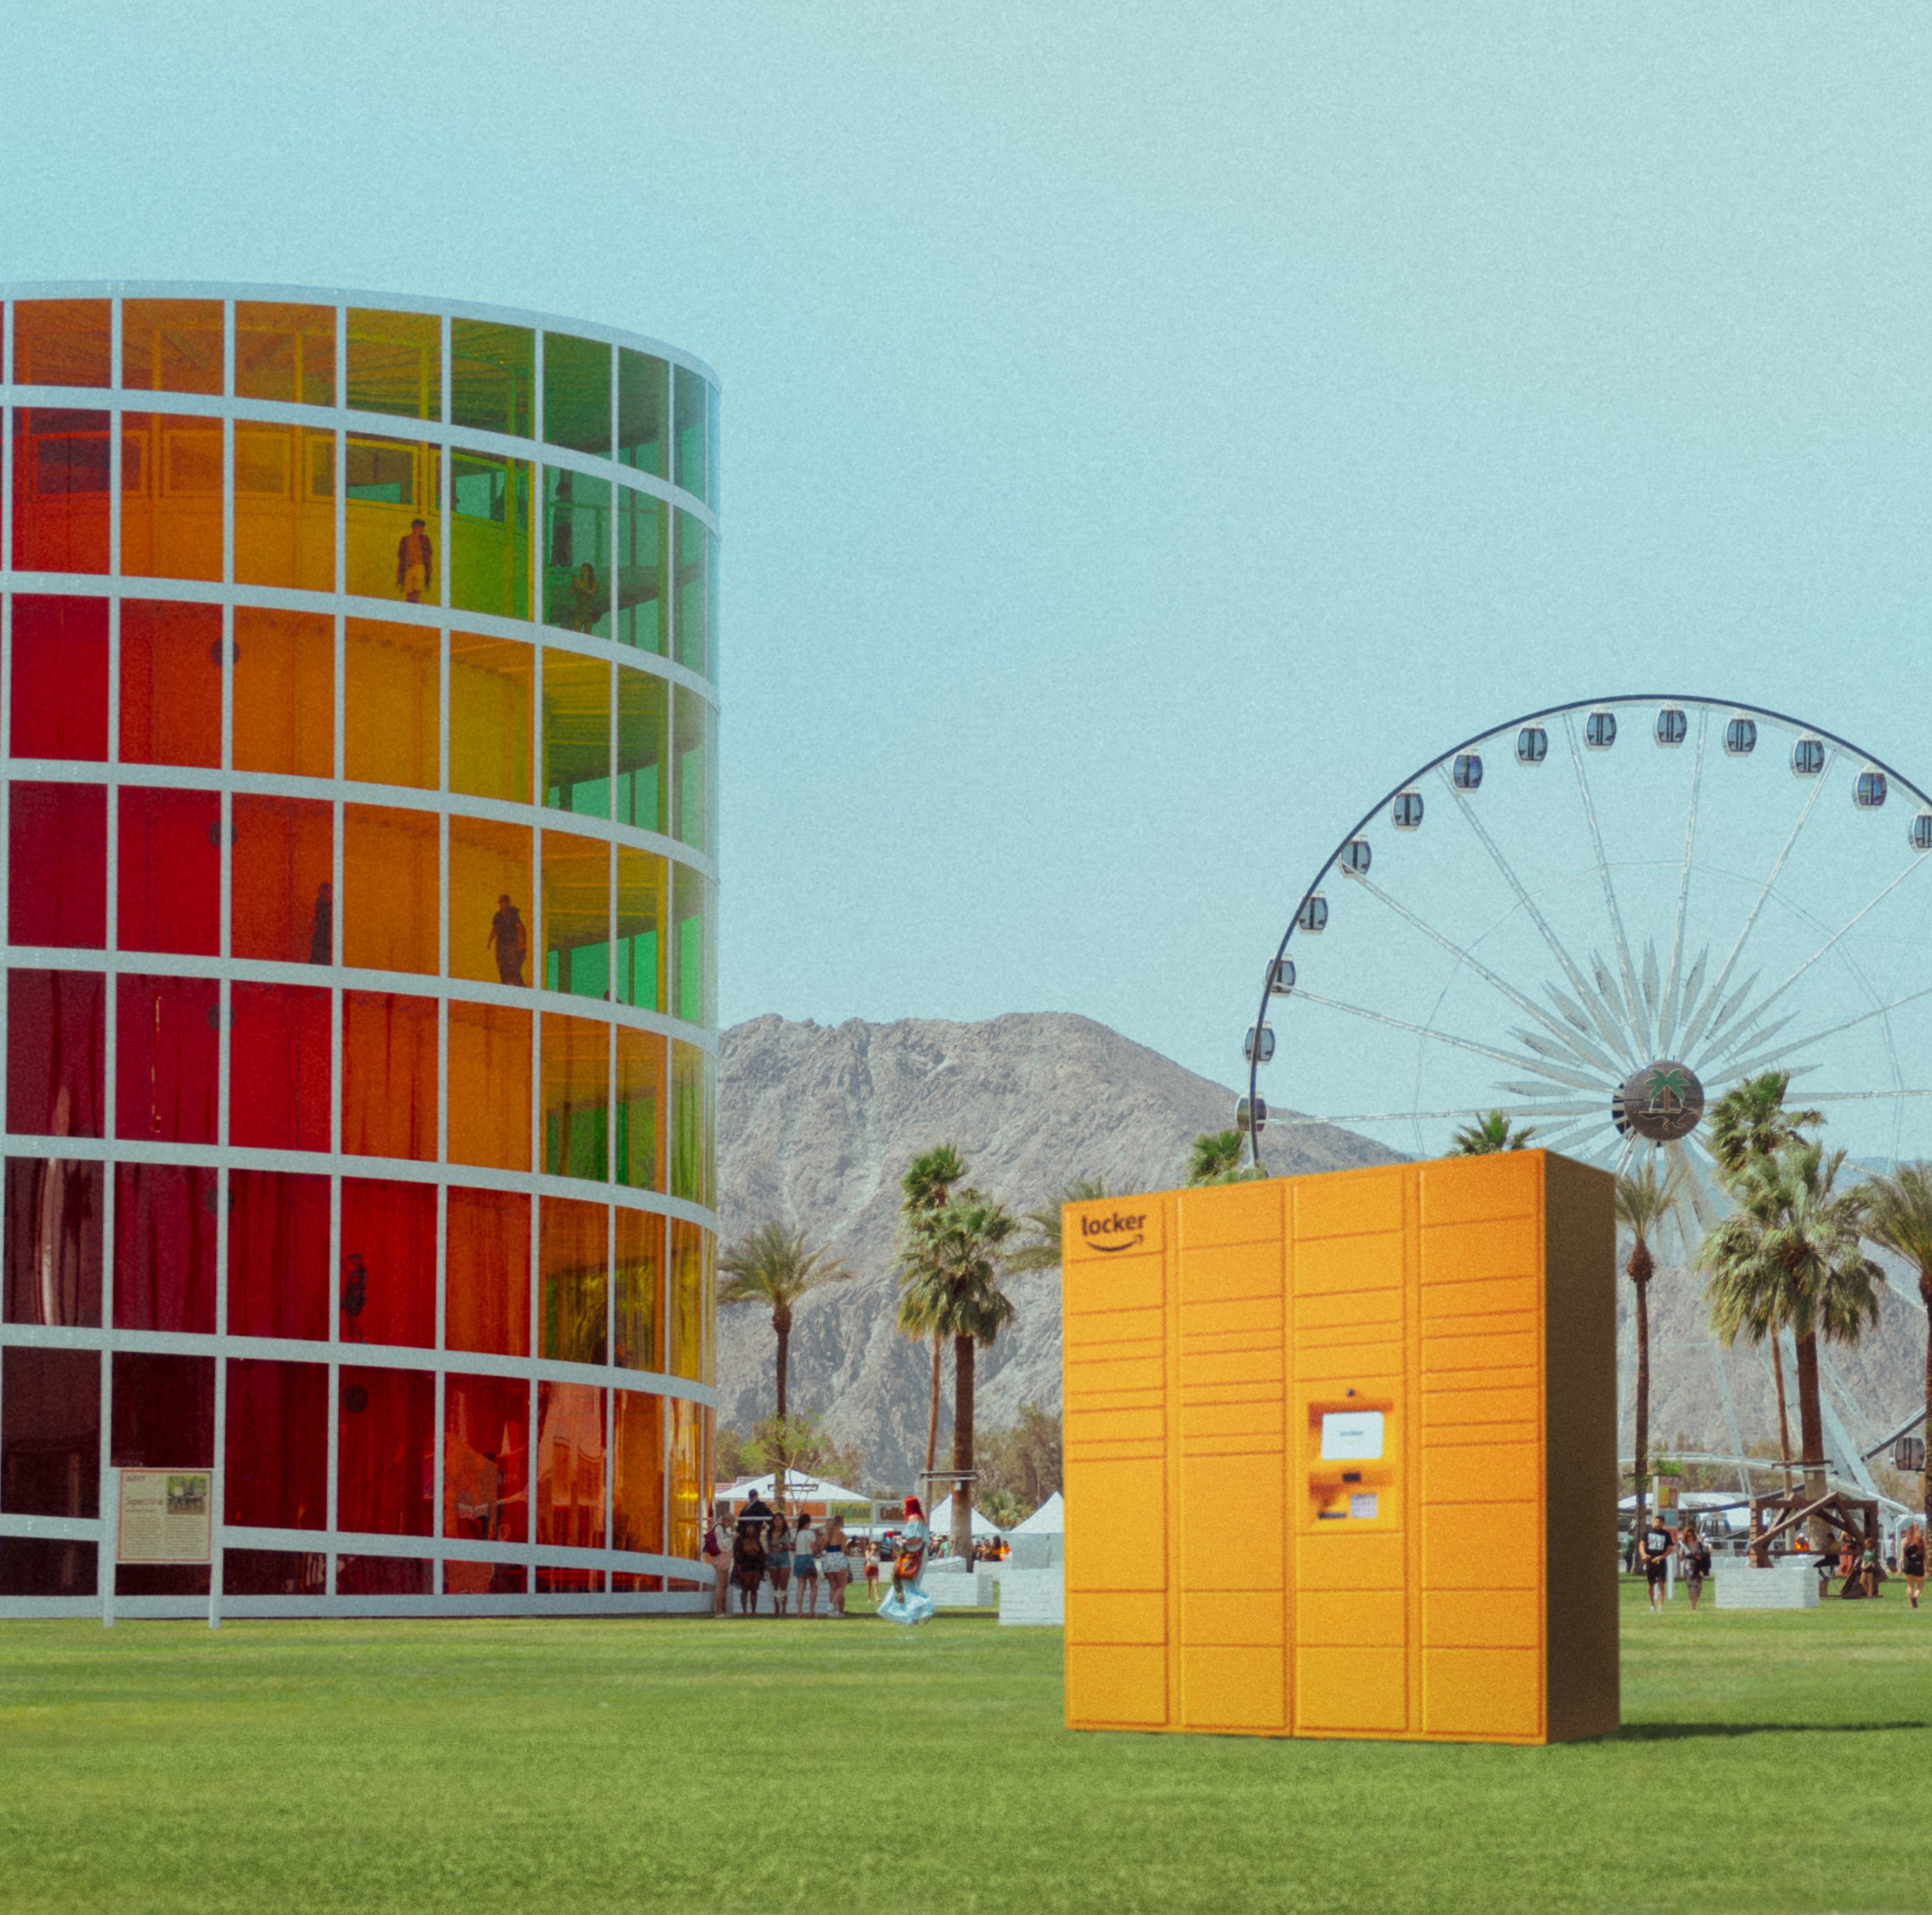 Forget something? Amazon lockers will be available at Coachella this year